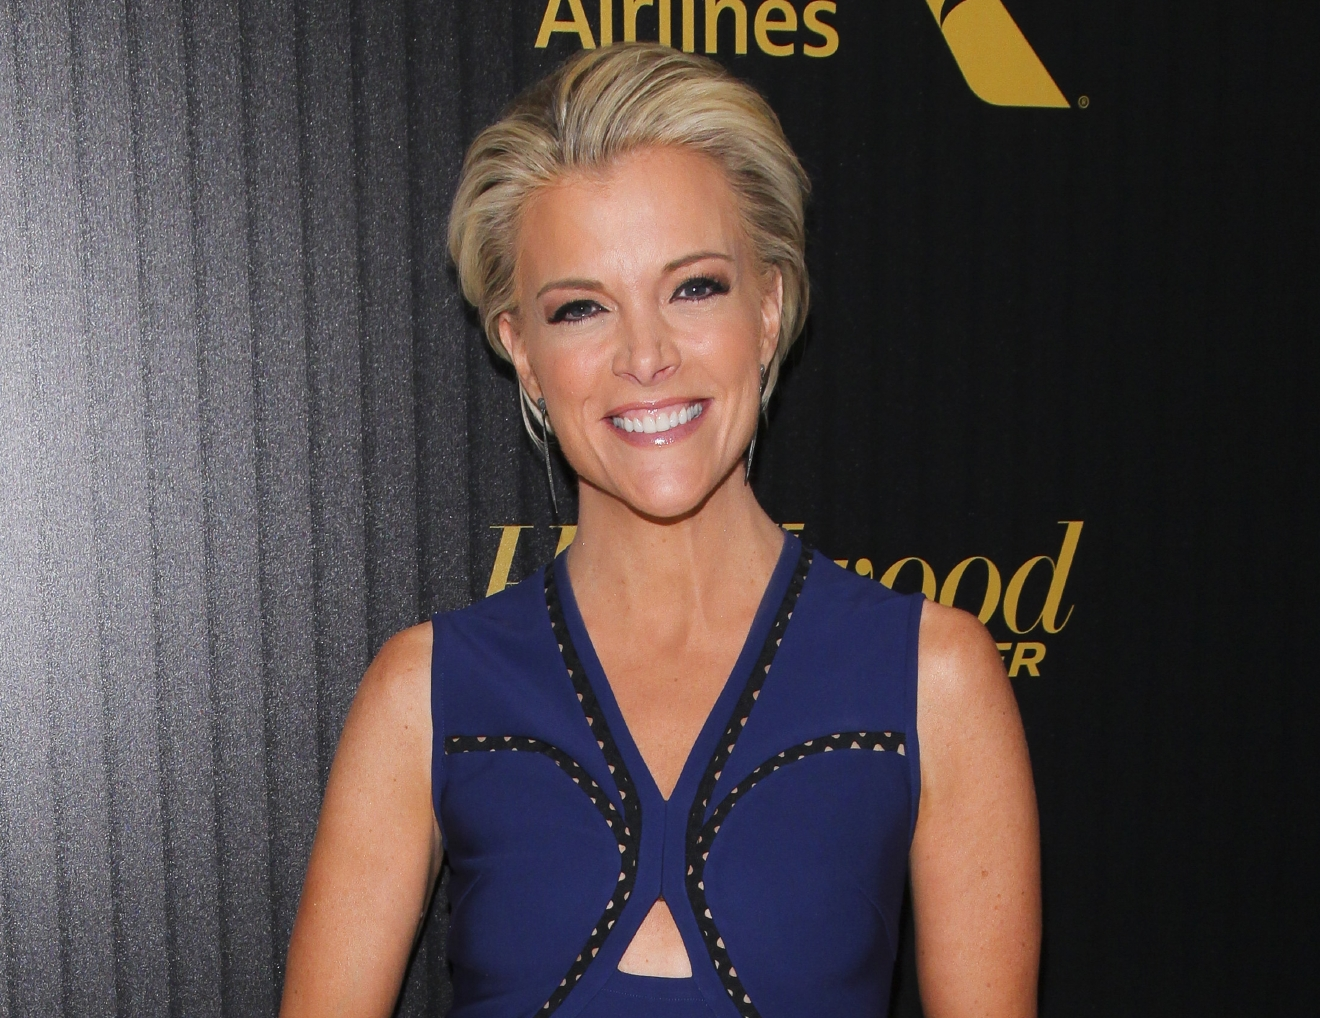 "FILE - In this April 6, 2016 file photo, Megyn Kelly attends The Hollywood Reporter's ""35 Most Powerful People in Media"" celebration in New York. Kelly will interview Donald Trump for a Fox TV special. It will mark Kelly's first interview with Trump since their encounter during a Fox News Channel debate last August. The GOP presidential contender will be a guest on ""Megyn Kelly Presents,"" a prime-time special airing May 17 on Fox TV, the network said Monday. (Photo by Andy Kropa/Invision/AP, File)"